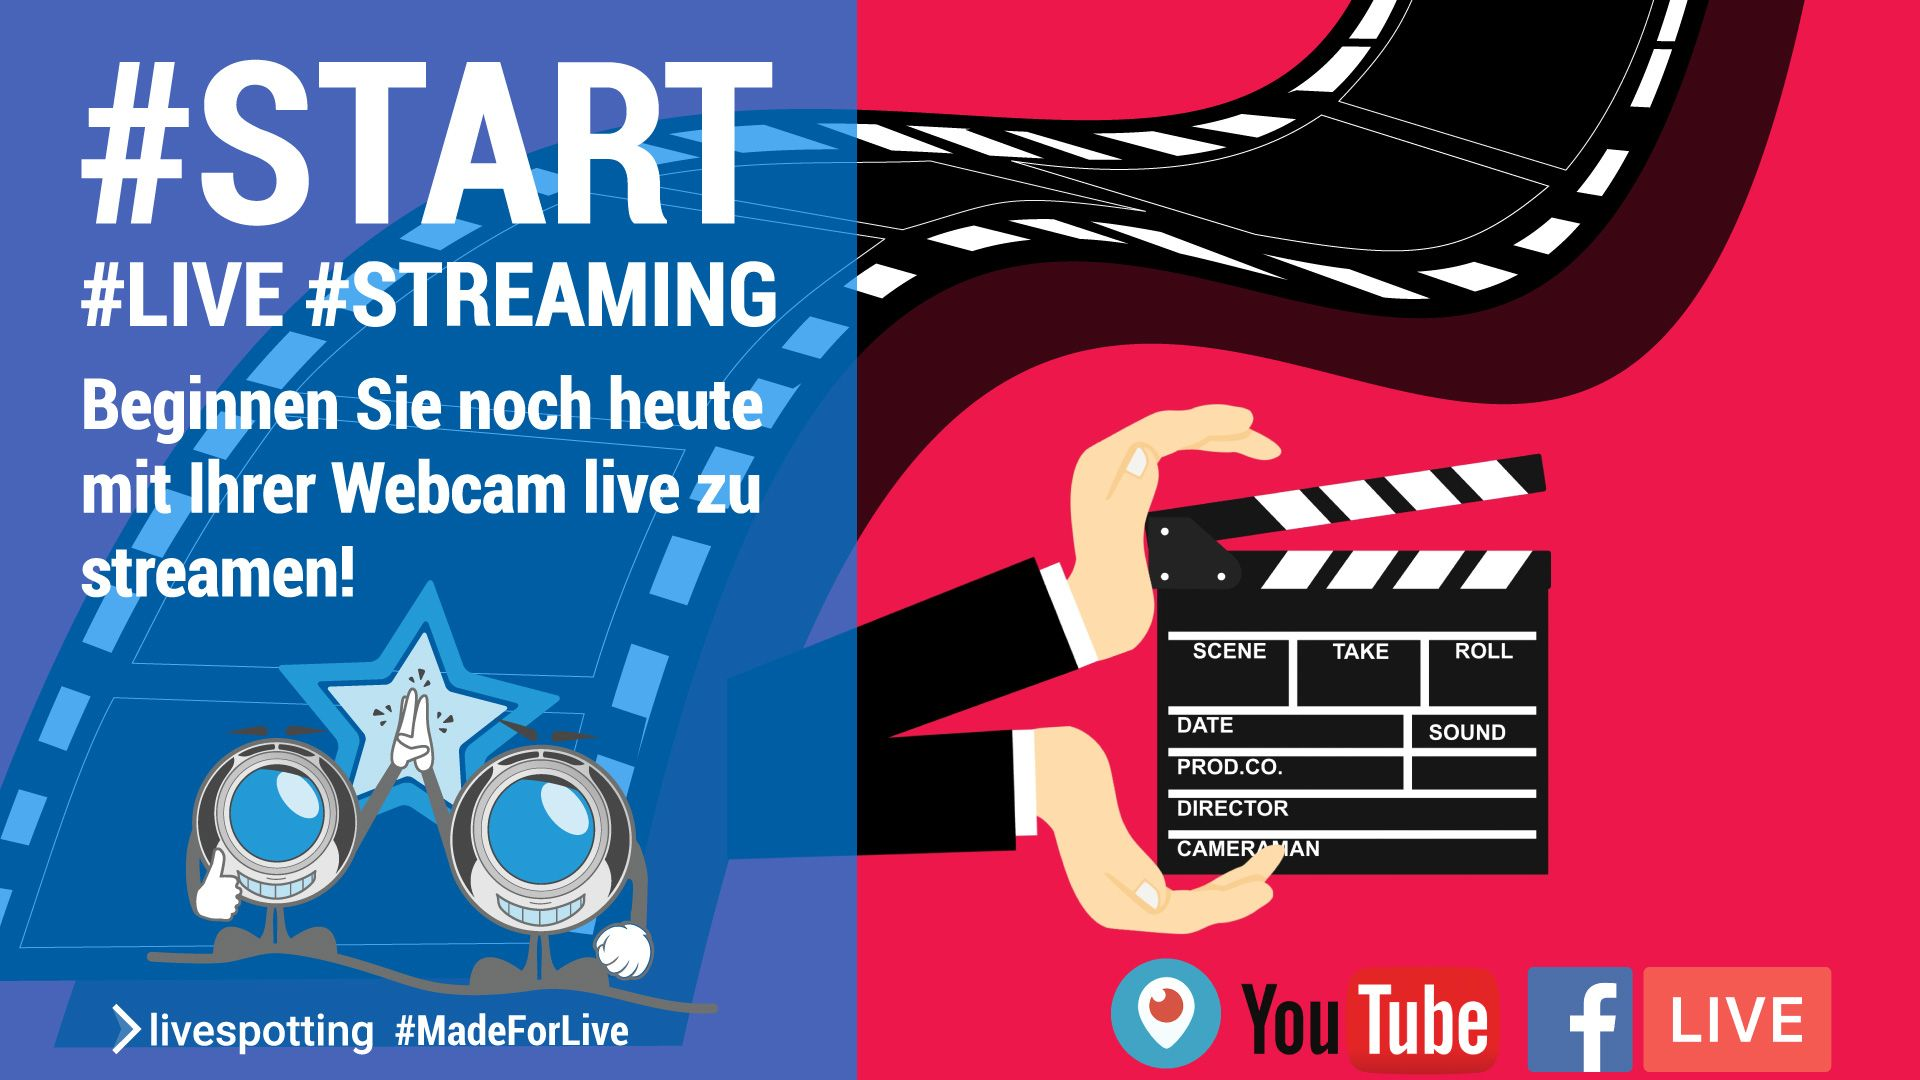 Wie beginne ich mit Live-Streaming?